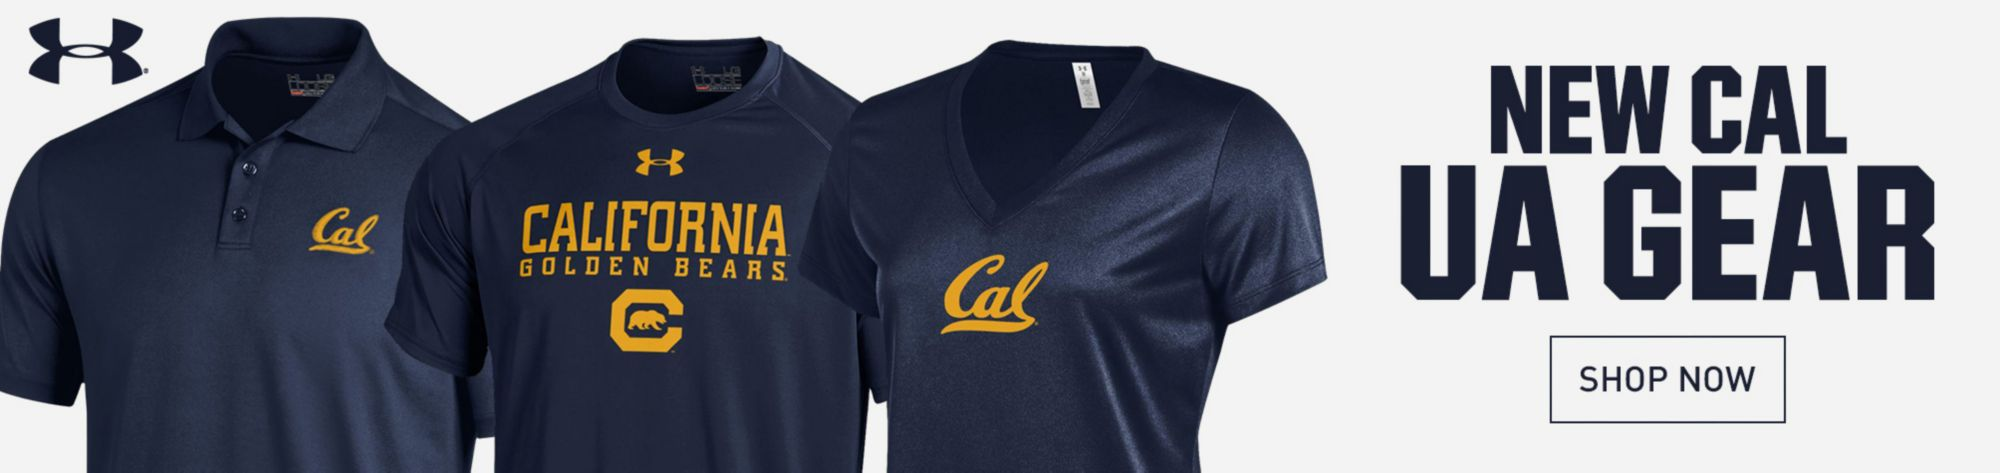 New Cal Under Armour Gear